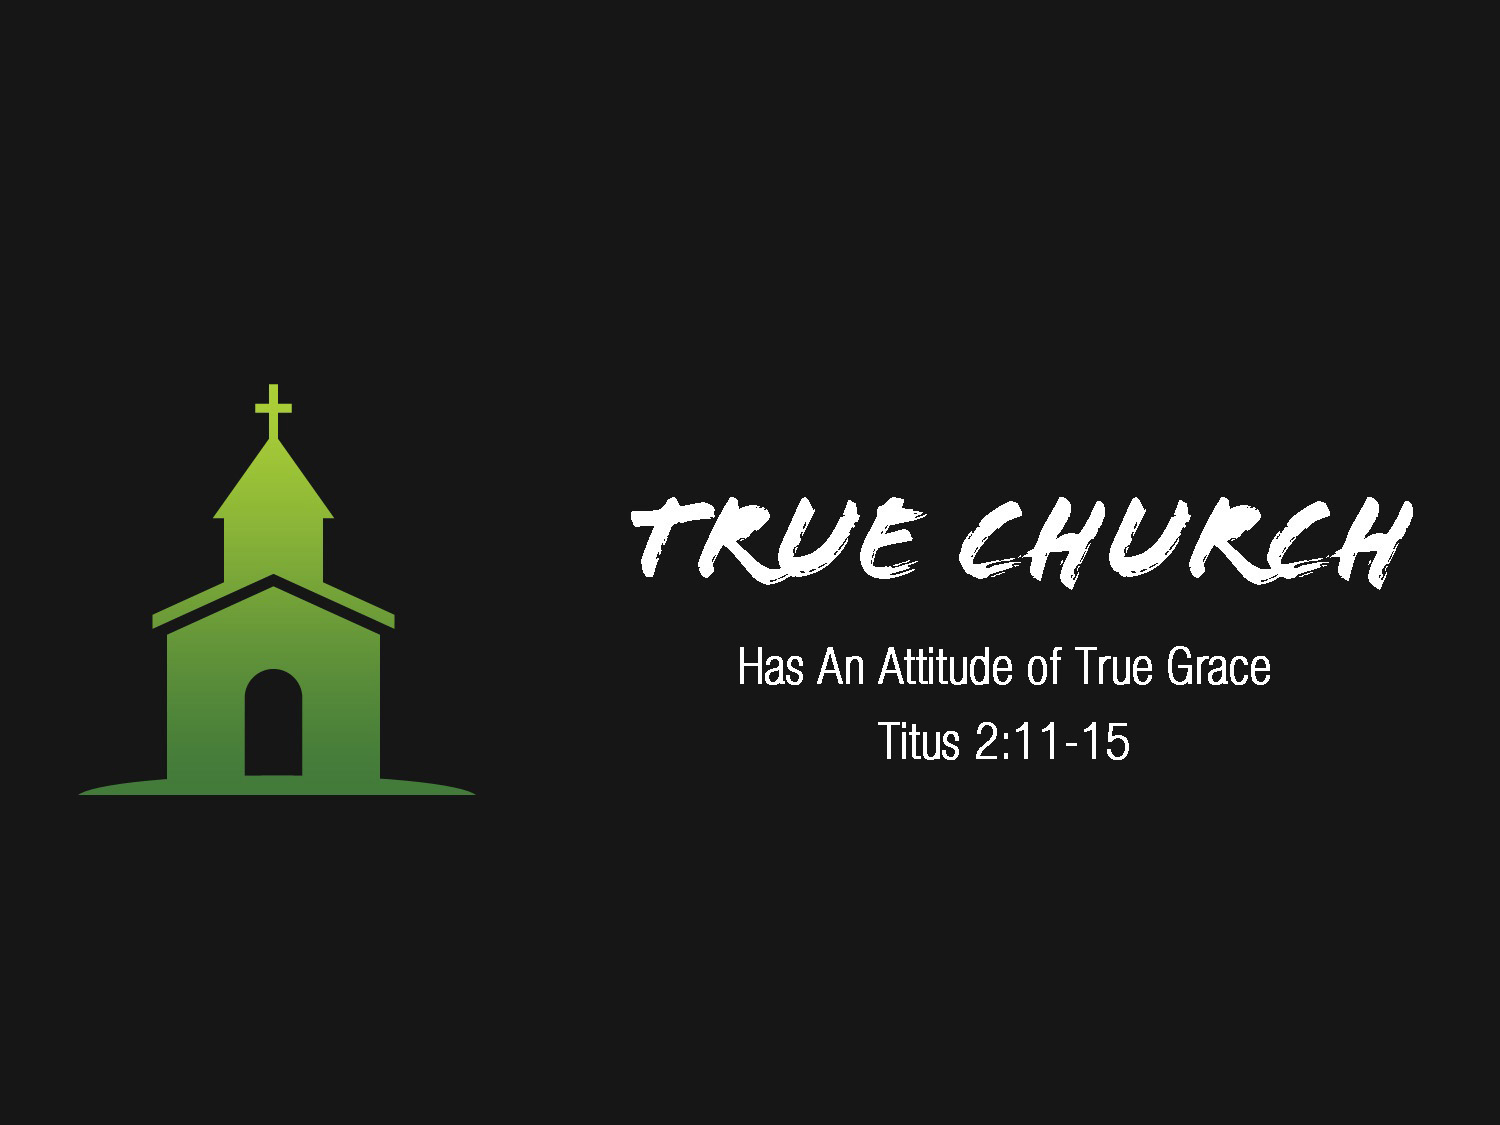 Titus 2v11-15 True Church Has An Attitude of True Grace